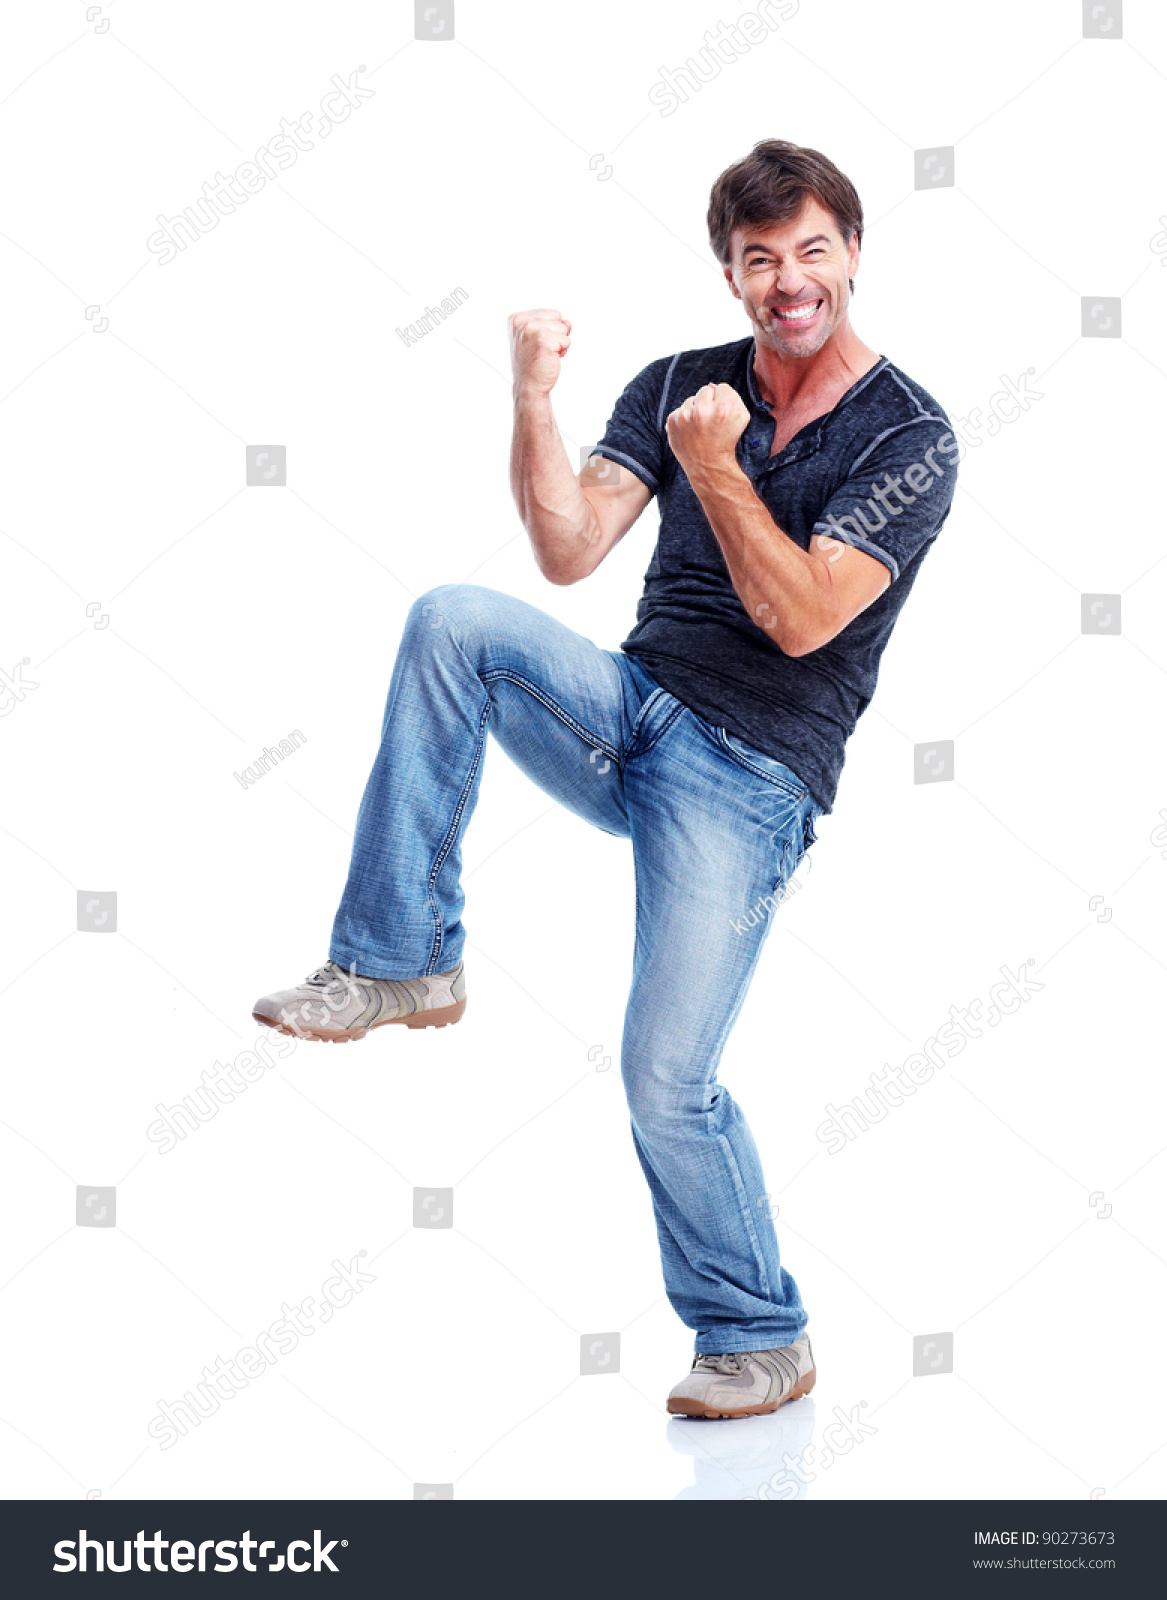 stock-photo-young-happy-man-isolated-over-white-background-90273673.jpg